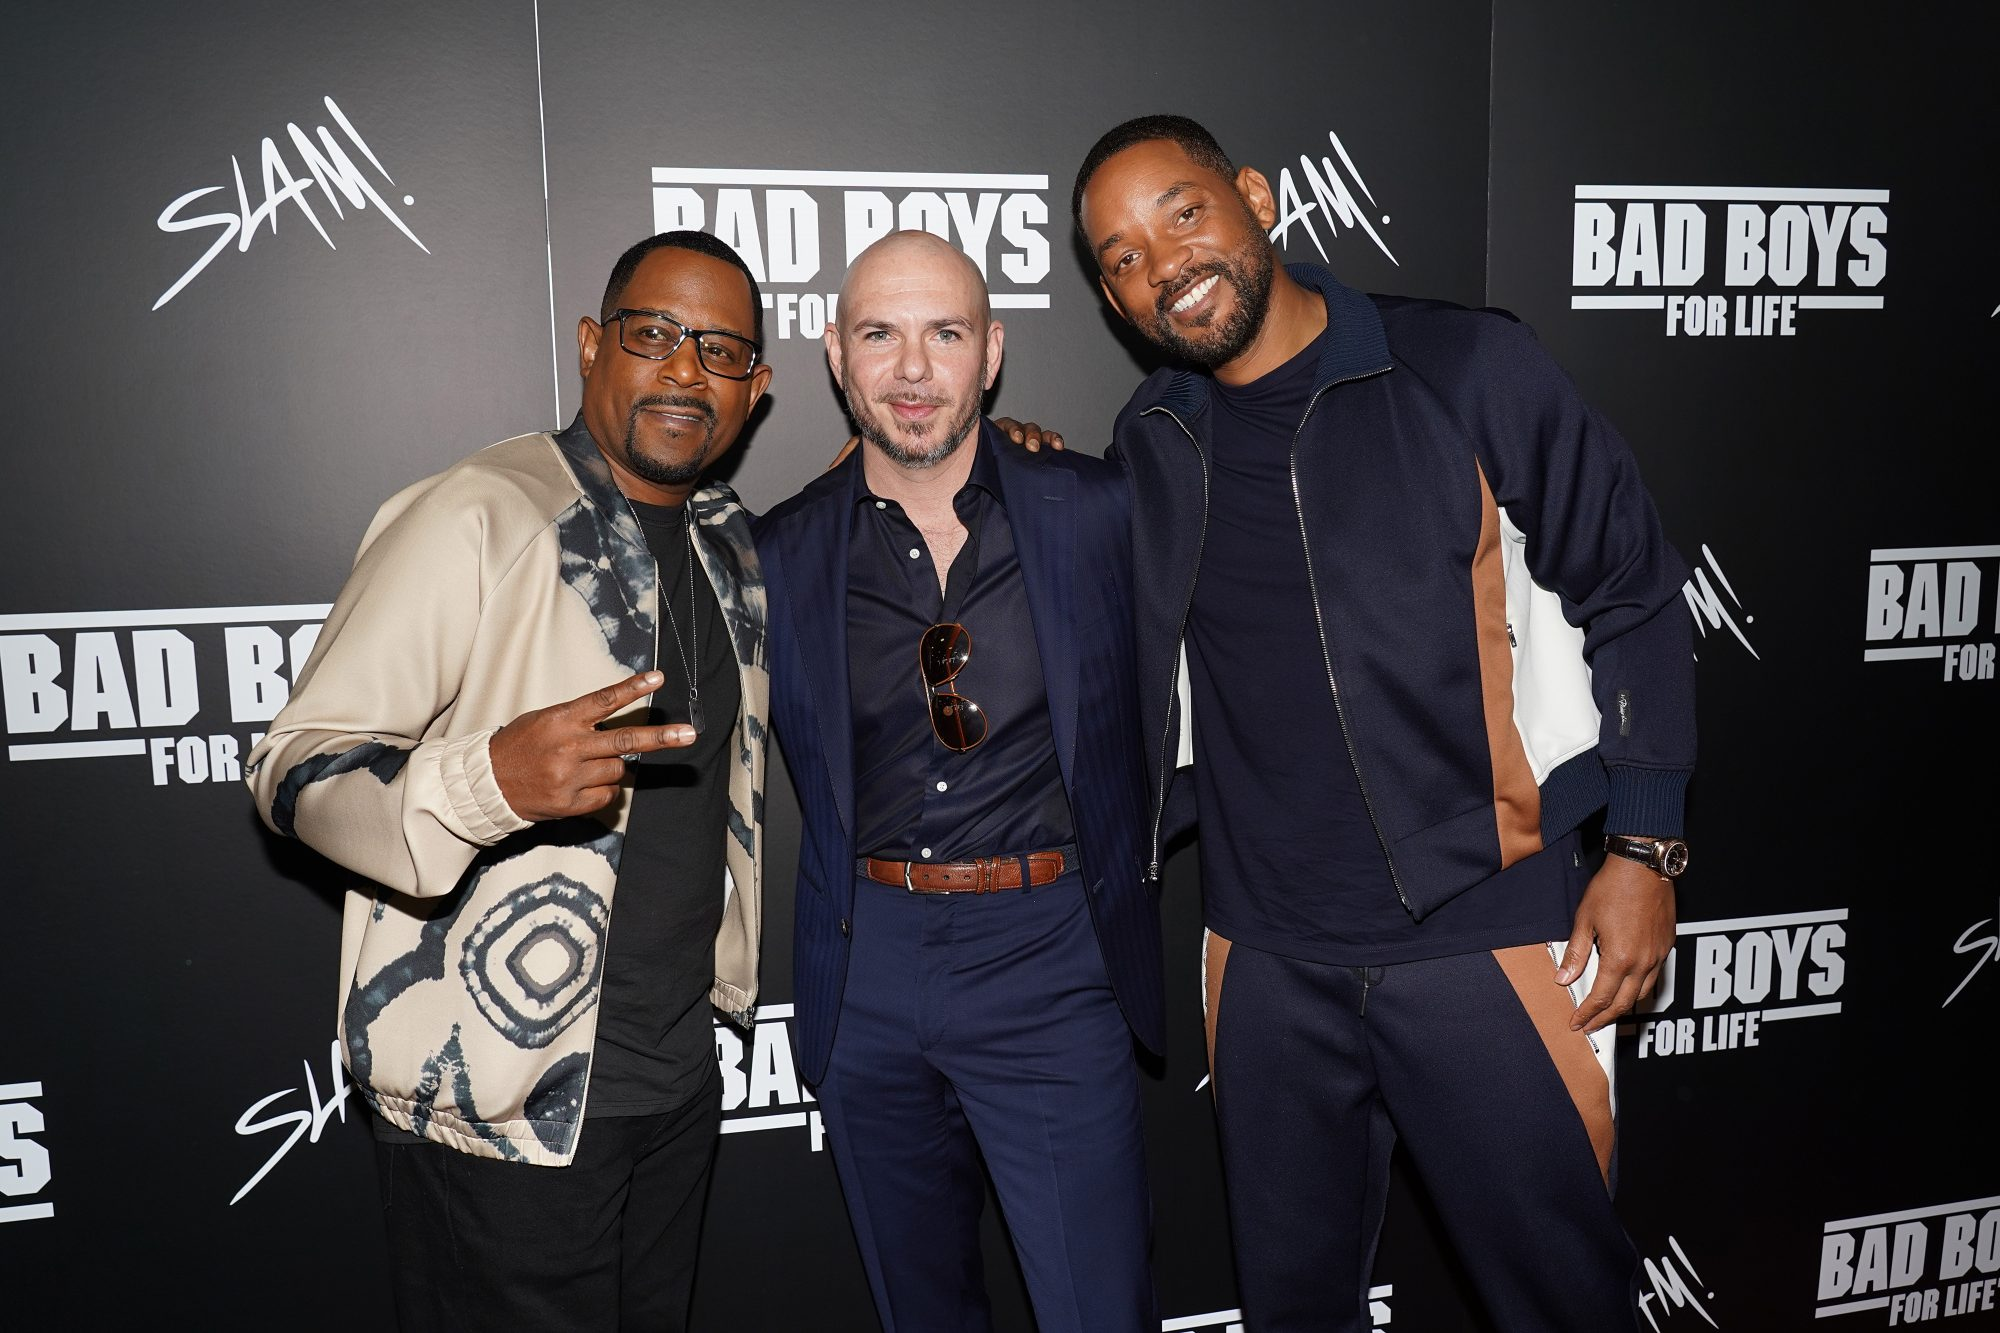 """Bad Boys For Life"": Will Smith And Martin Lawrence Surprise Students At Slam! Miami"